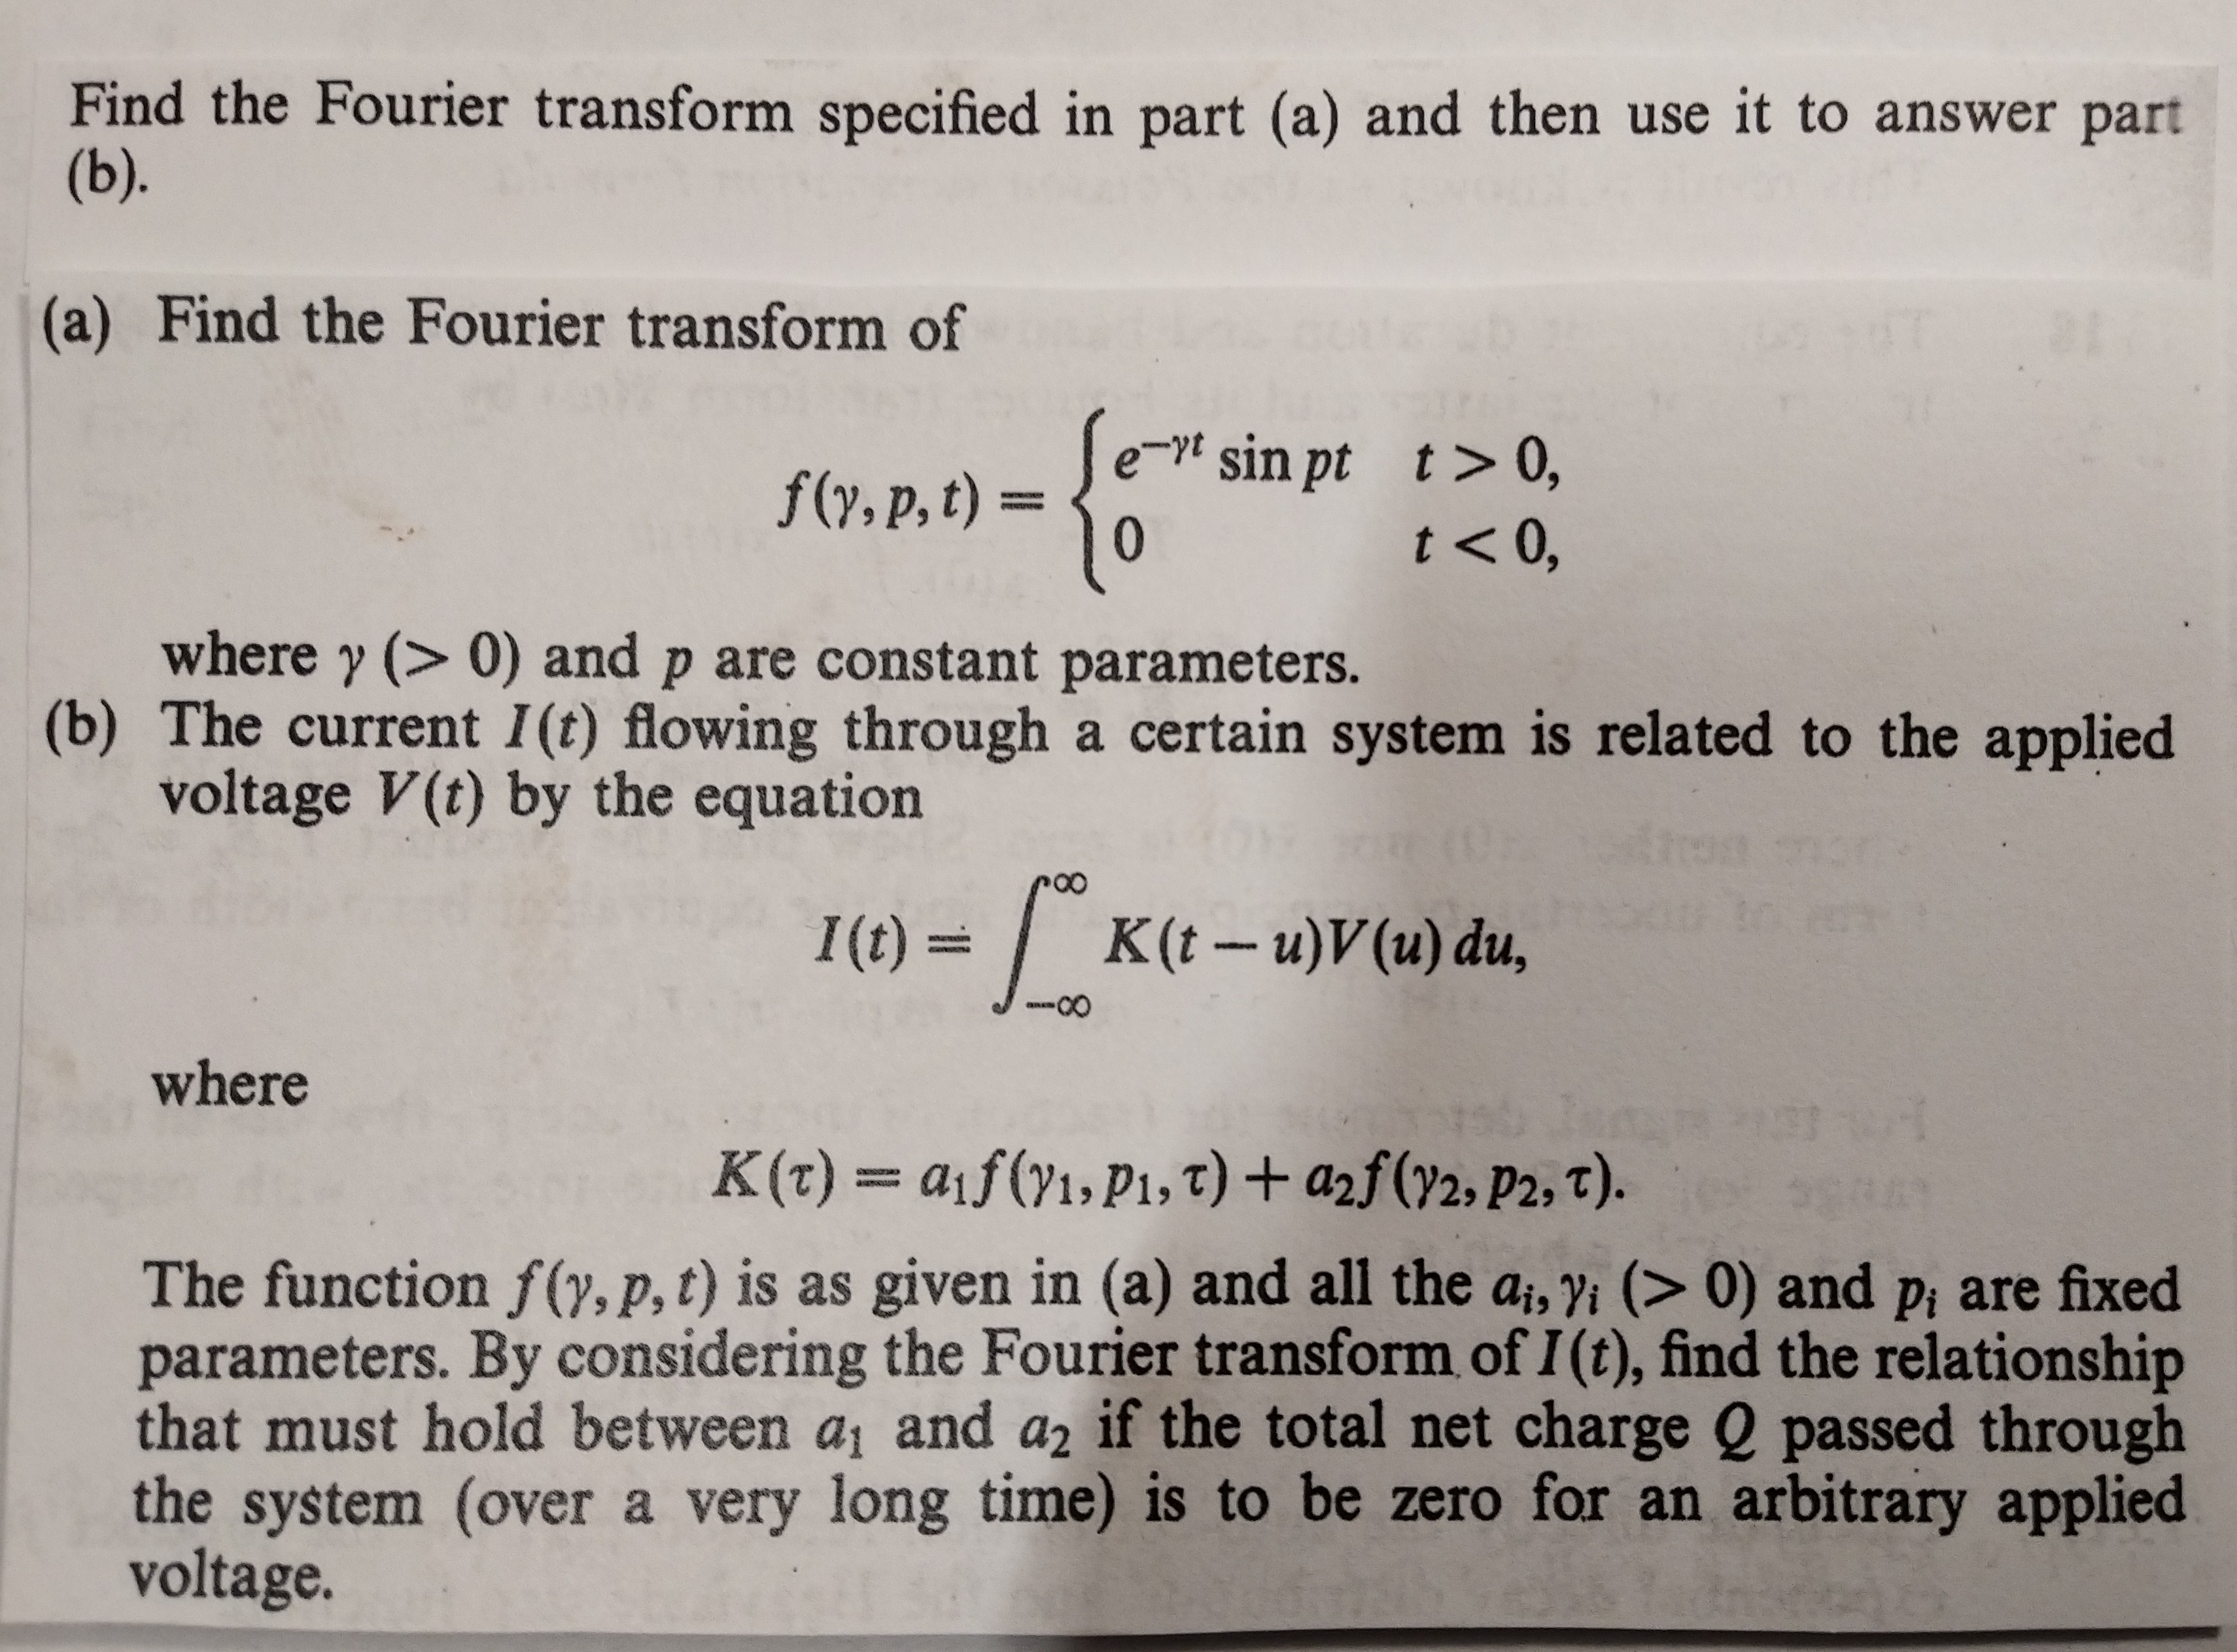 Find the Fourier transform specified in part (a) and then use it to answer part (b). (a) Find the Fourier transform of f(y, p, t)Jet sin pt t> 0, 0 '0>1 where y (> 0) and p are constant parameters. (b) The current 1(t) flowing through a certain system is related to the applied voltage V(t) by the equation Aros I(t)= K(t - u)V(u) du, where nOr K(t) = aif (y1, Pi, T) + a2f(72, P2, T). The function f(y, p, t) is as given in (a) and all the ai, yi (> 0) and pi are fixed parameters. By considering the Fourier transform of I (t), find the relationship that must hold between ai and a2 if the total net charge Q passed through the system (over a very long time) is to be zero for an arbitrary applied voltage.